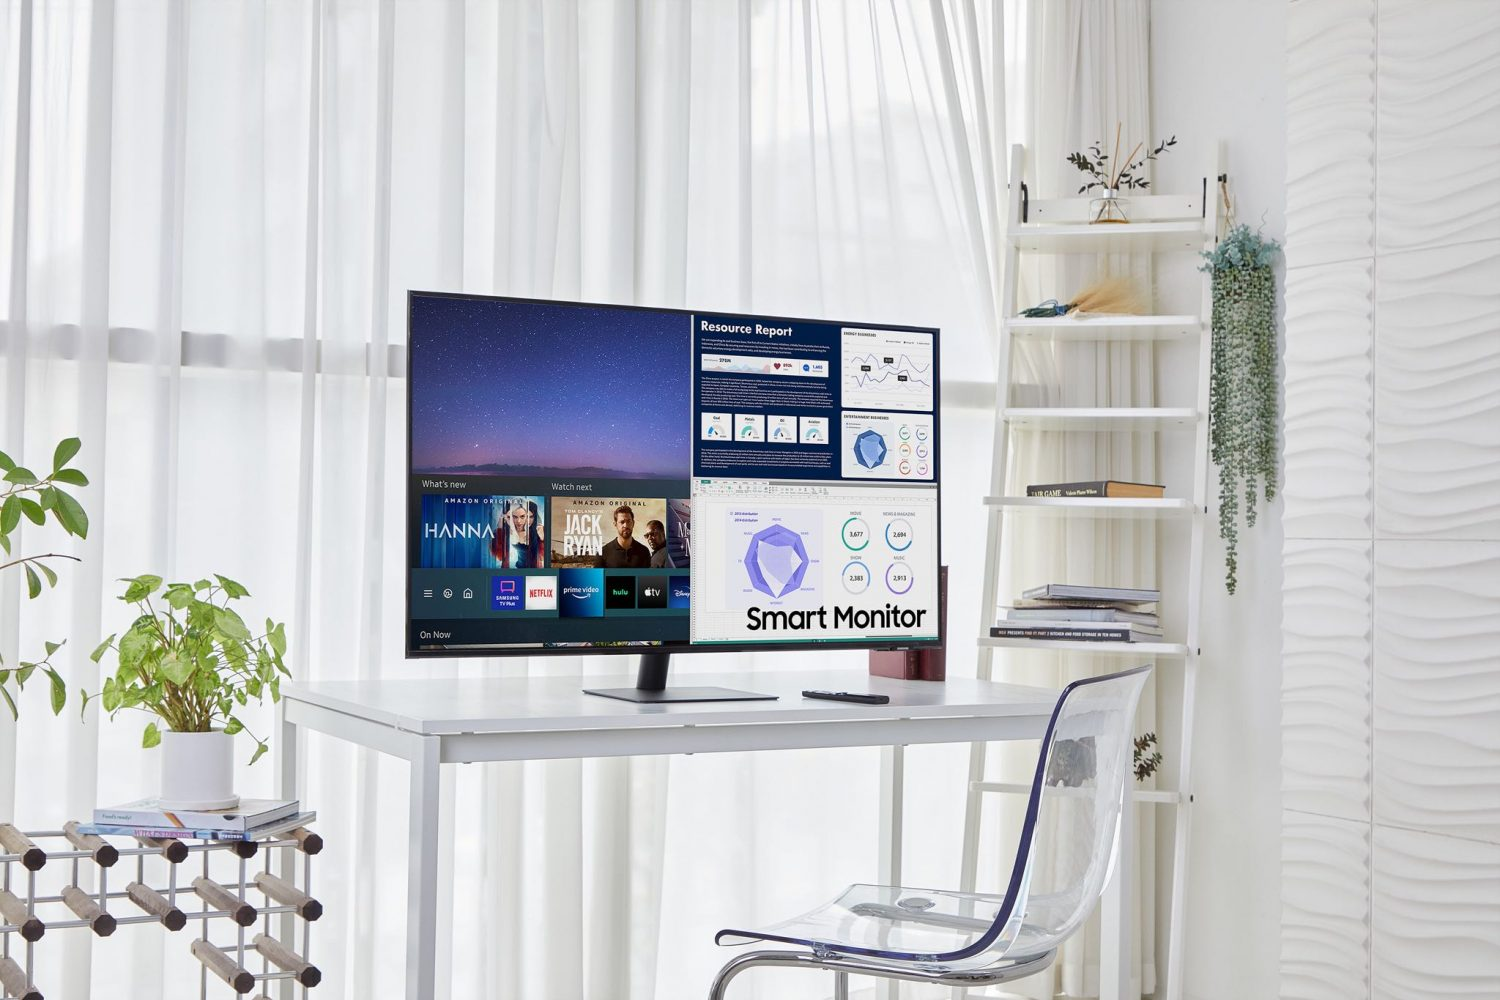 Samsung's promotional photograph depicting the new 43-inch M7 Smart Monitor on a desk